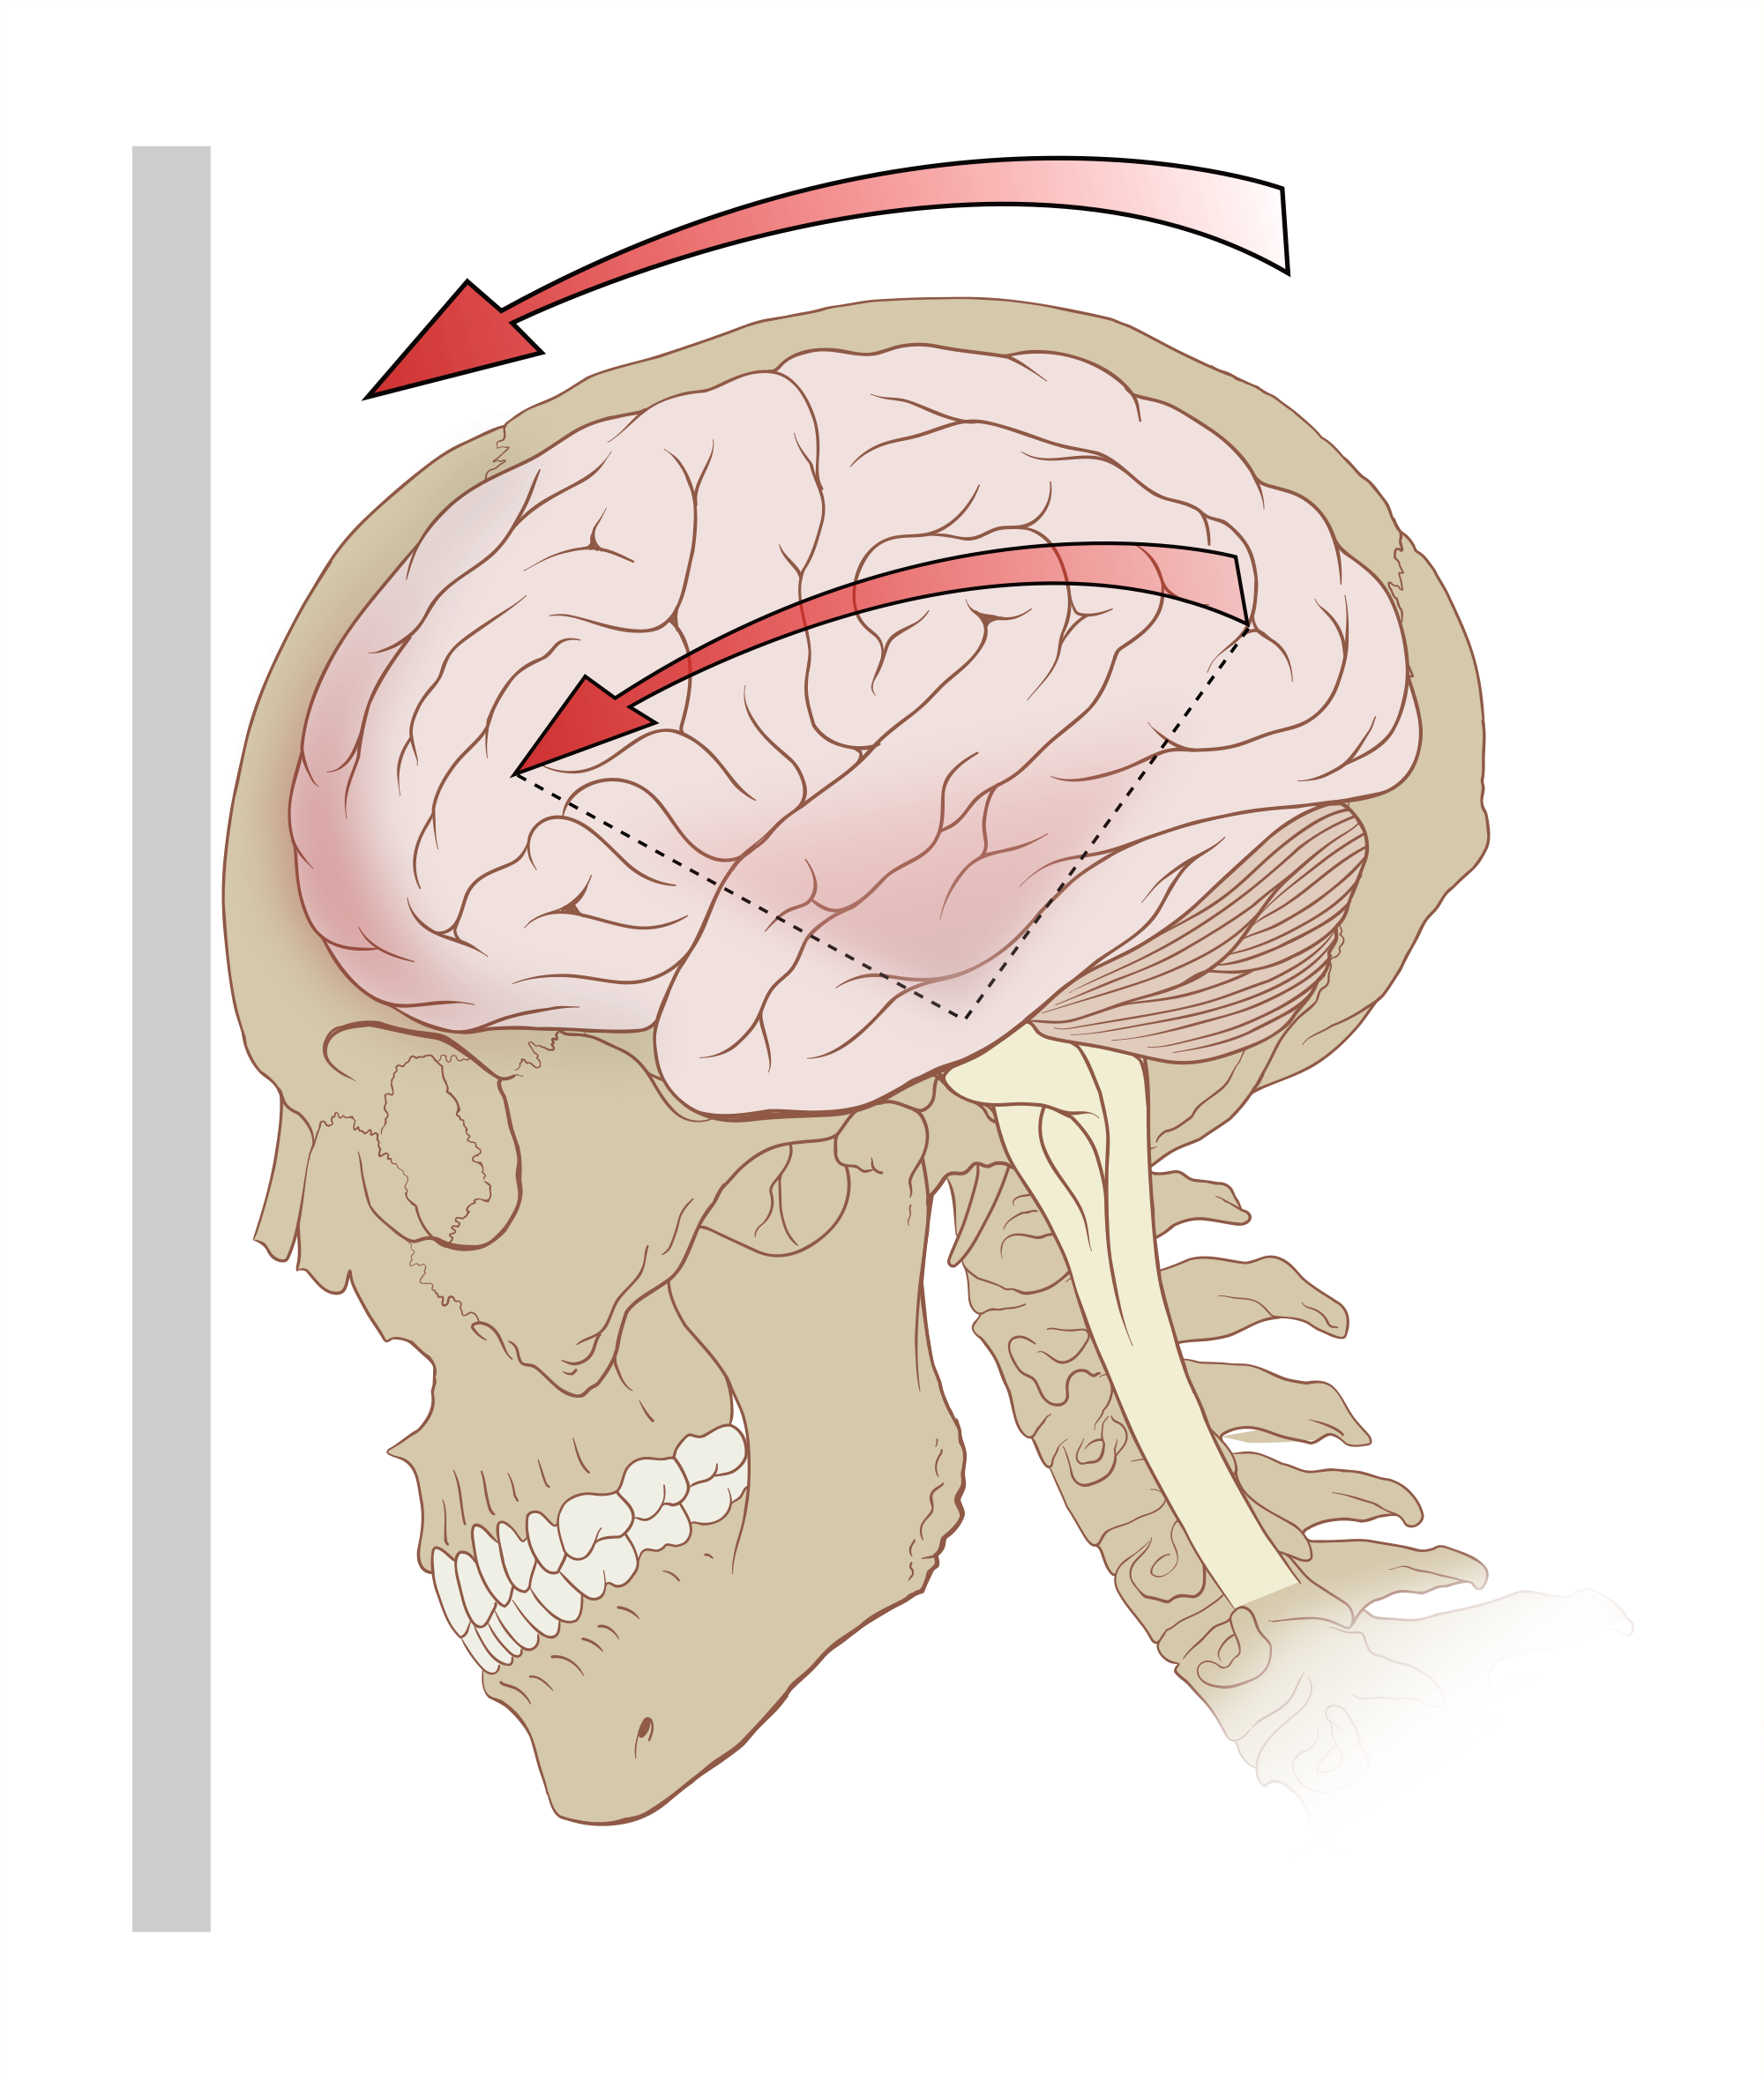 Drawing injuries traumatic brain. When it comes to